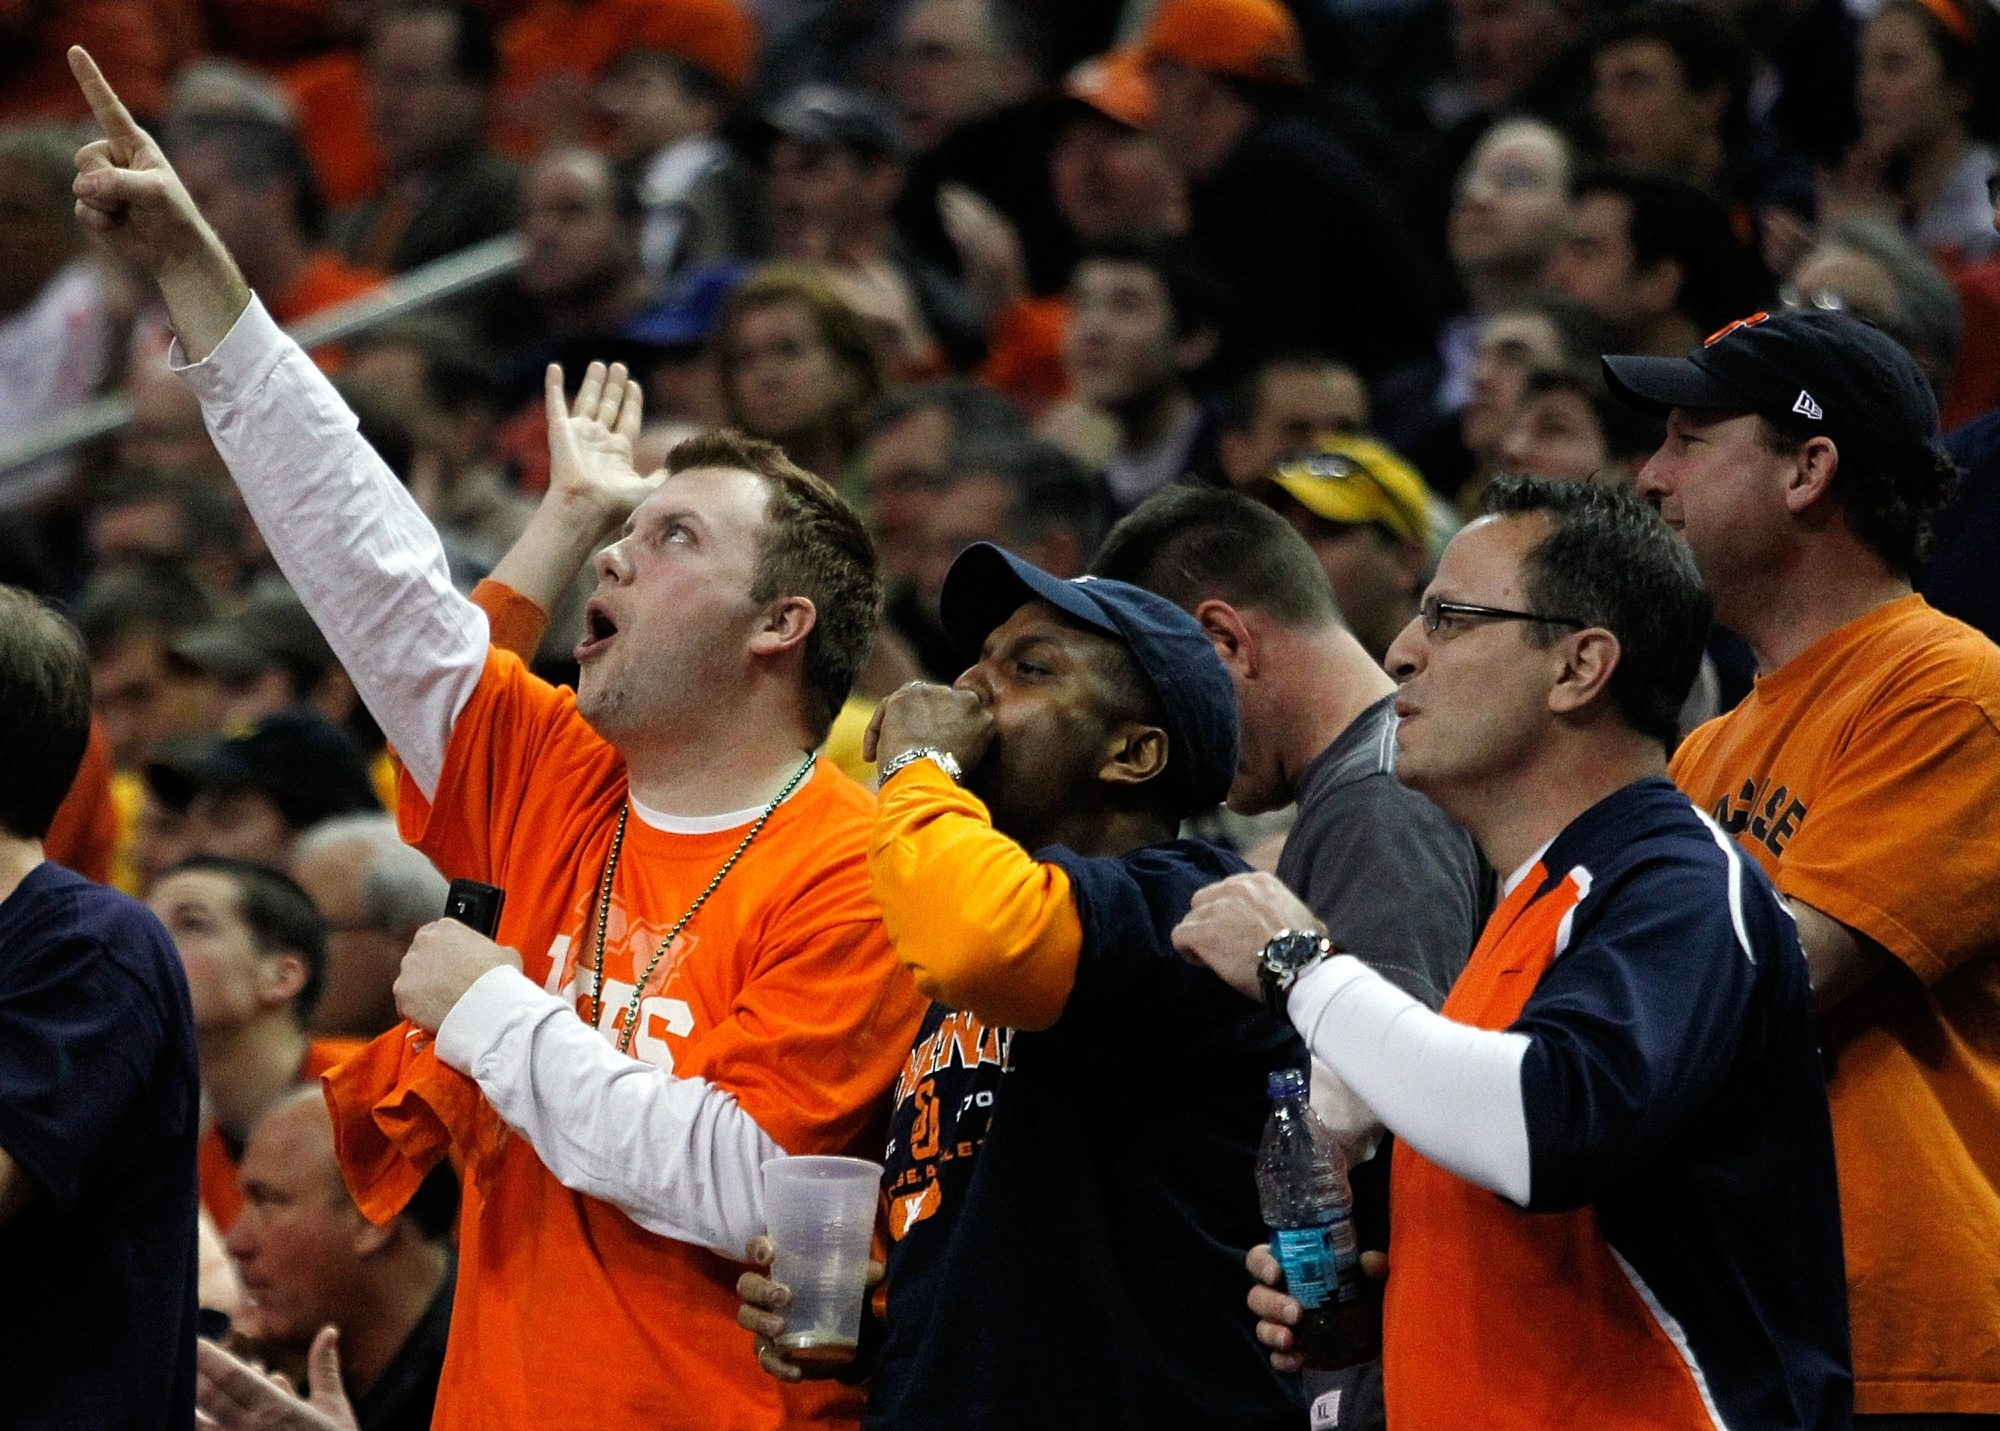 Syracuse fans react after a three-pointer against Gonzaga during the 2010 NCAA men's basketball tournament at HSBC Arena.